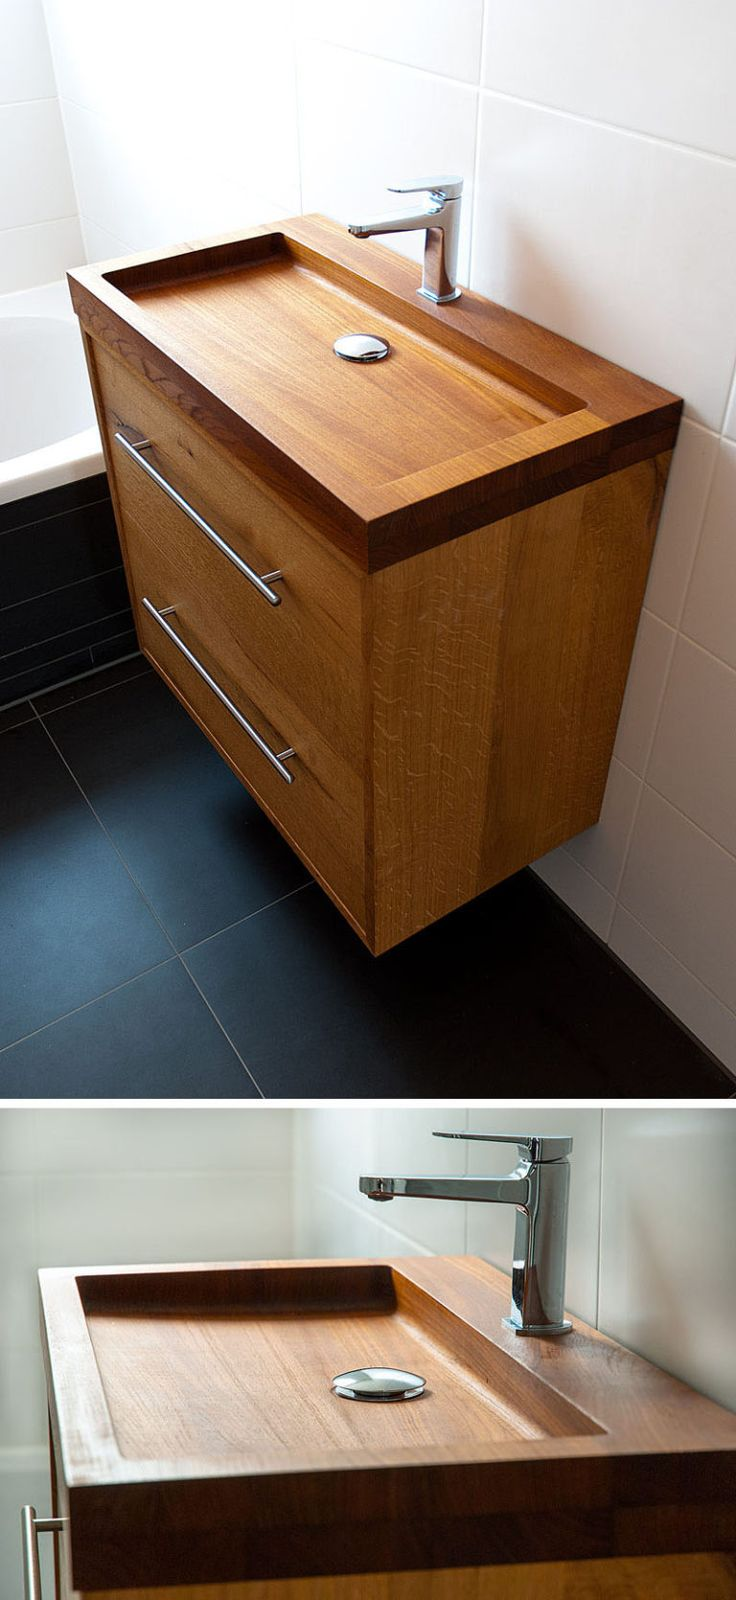 Bathroom Design Idea – Install A Wood Sink For A Natural Touch